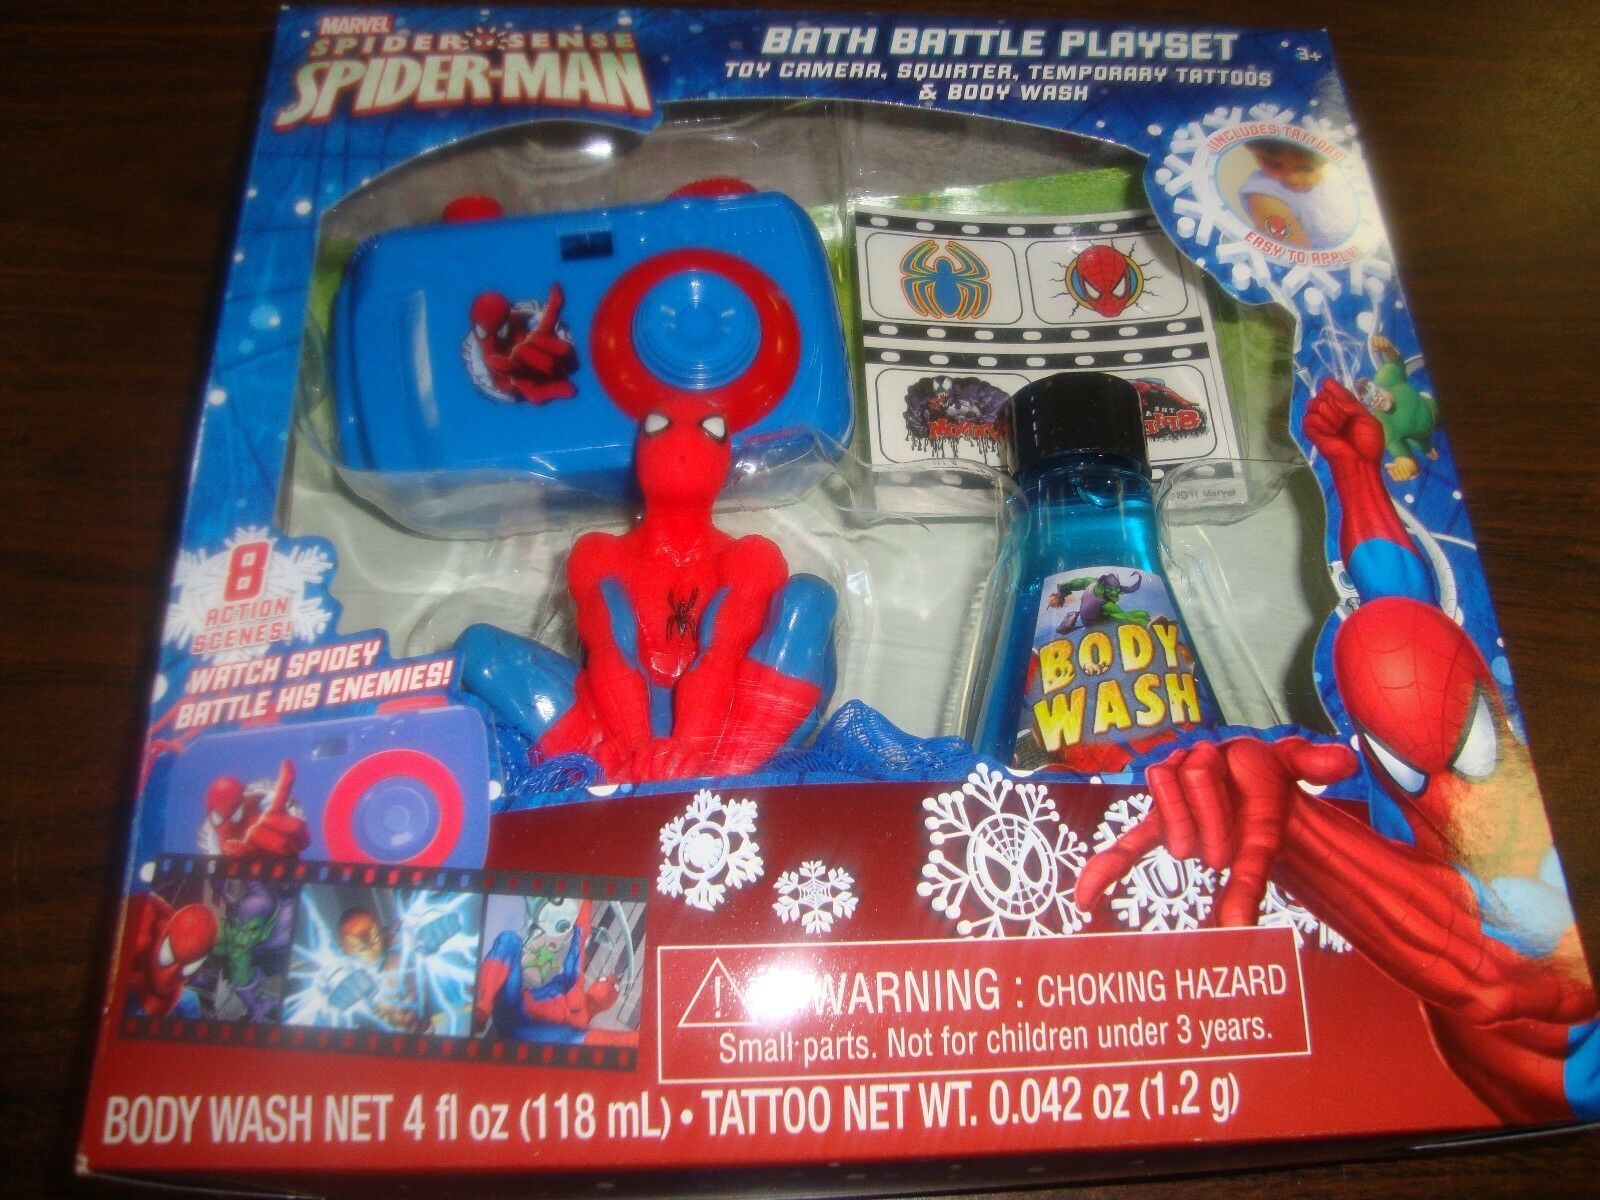 Spider-Man---Bath Spider-Man---Bath Spider-Man---Bath Battle Playset---With Camera Squirter Tattoos Body Wash---2011 34573d